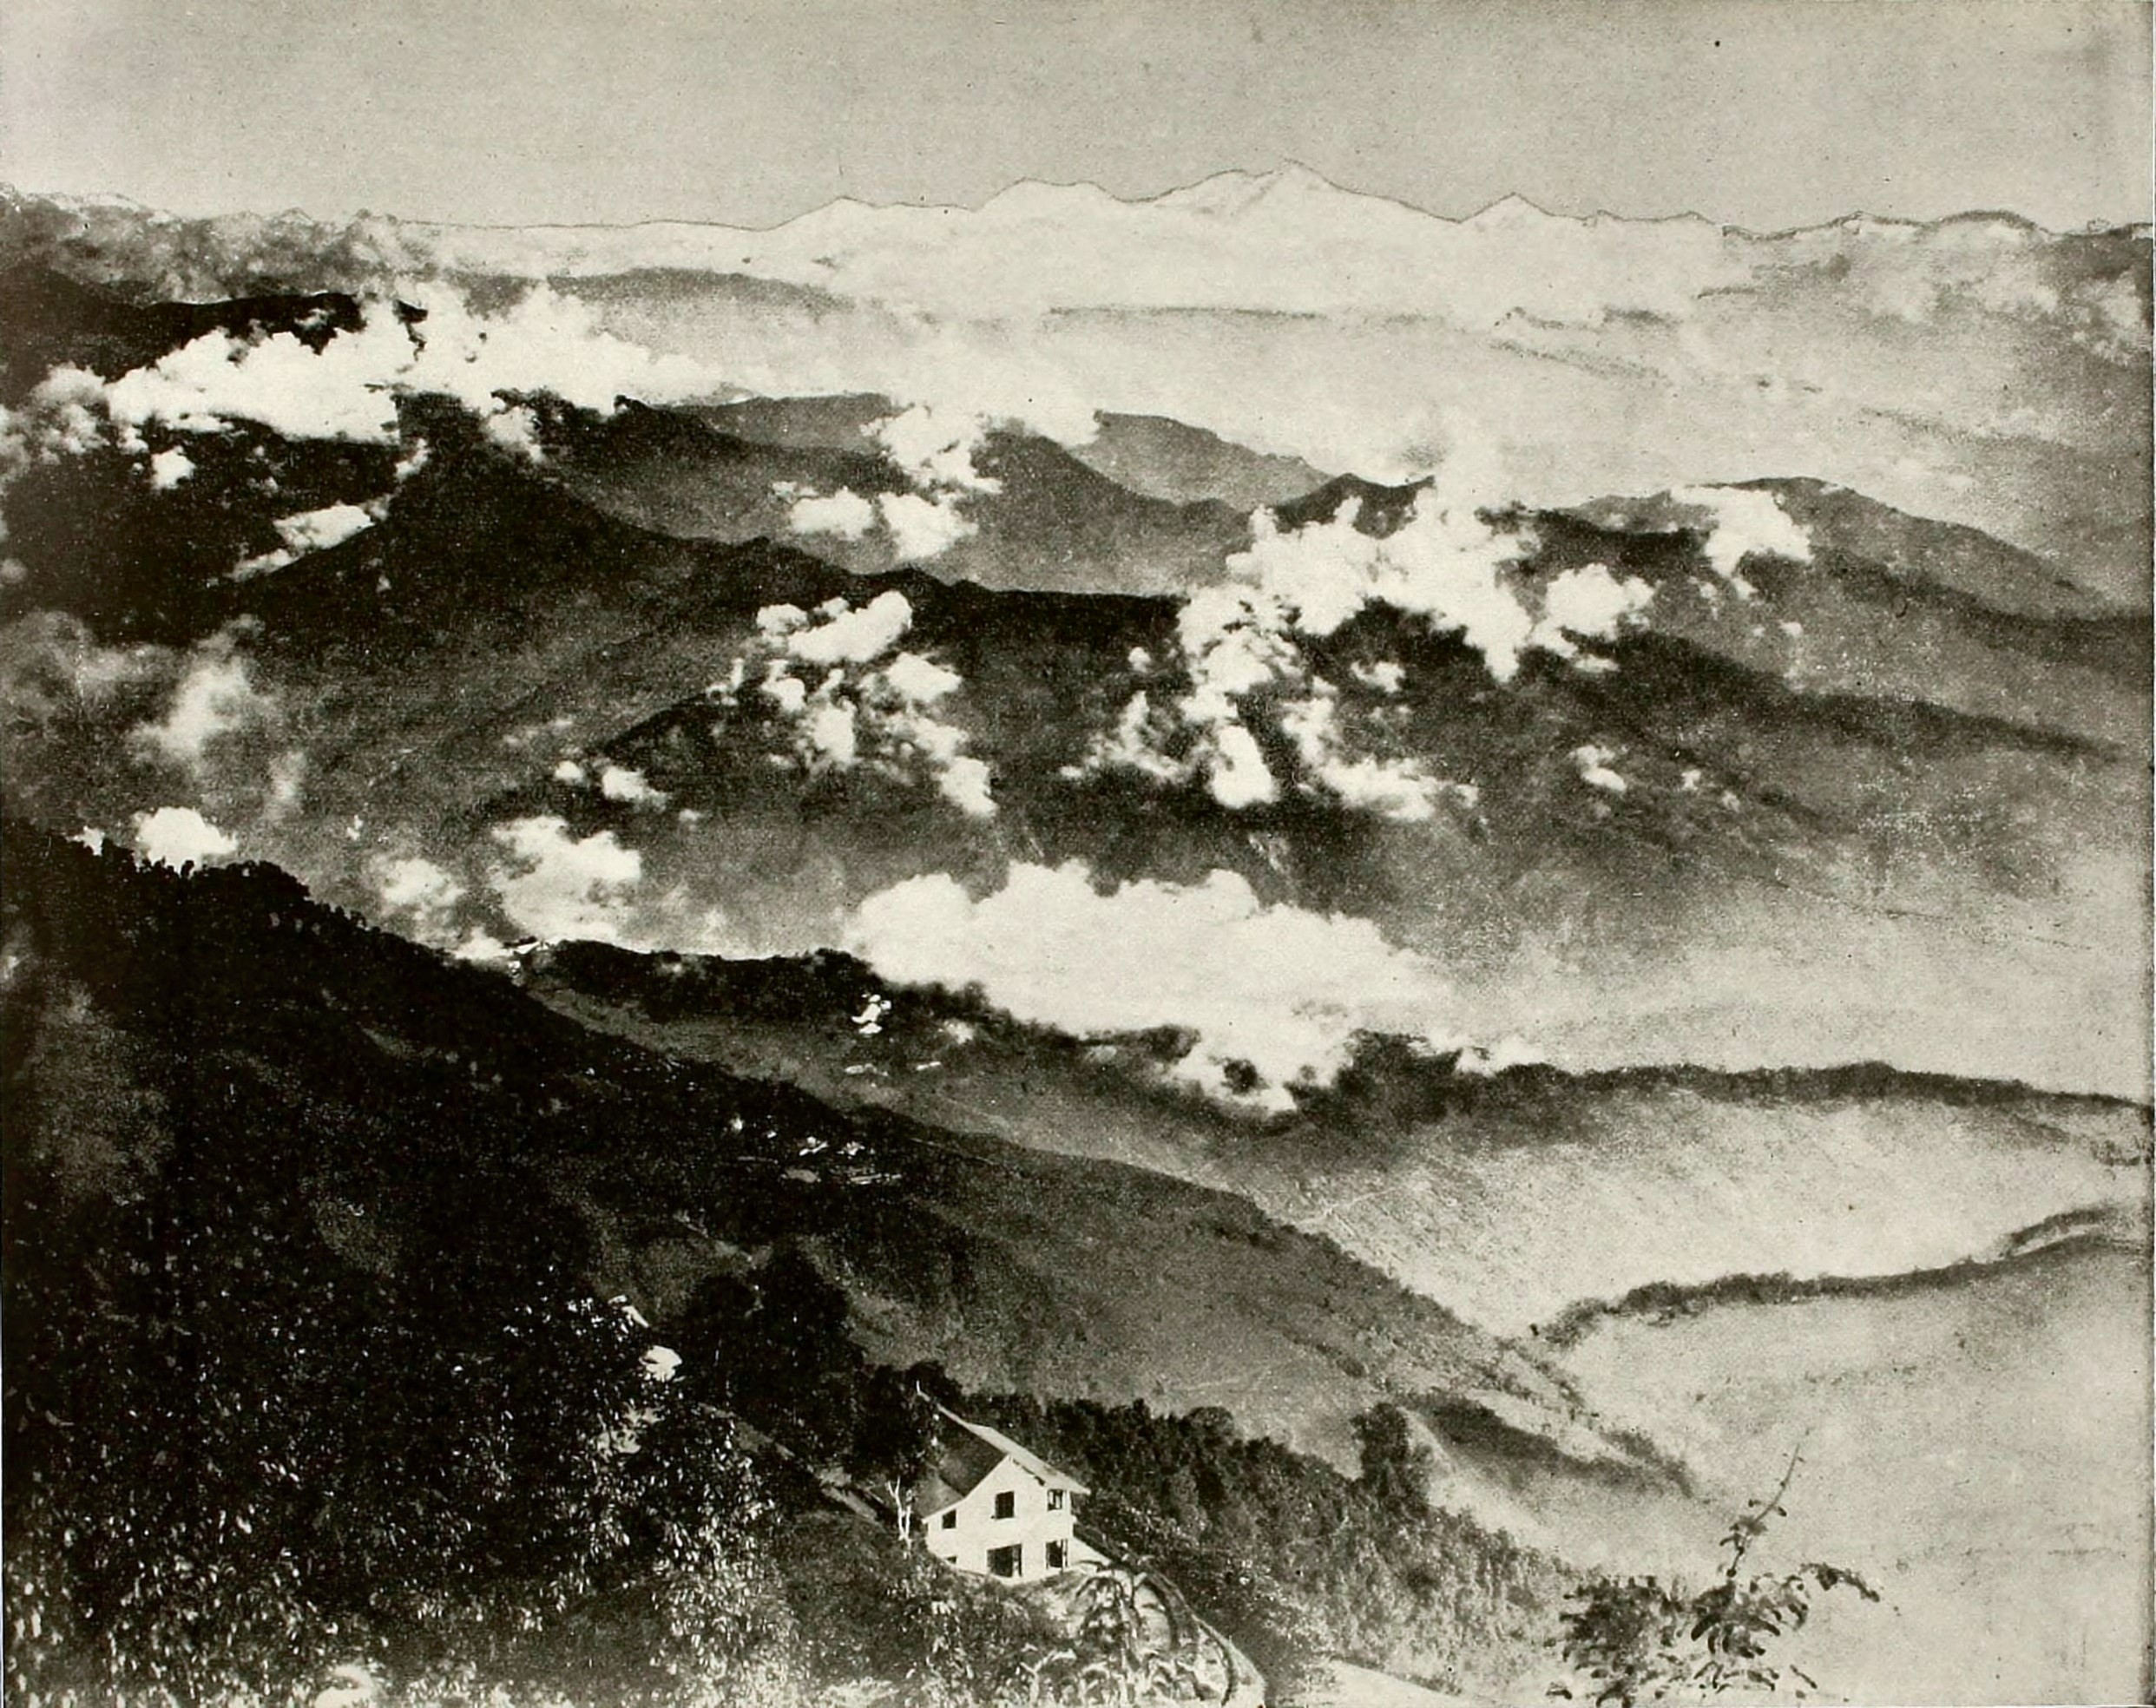 The Himalayas from Darjeeling India about 1865